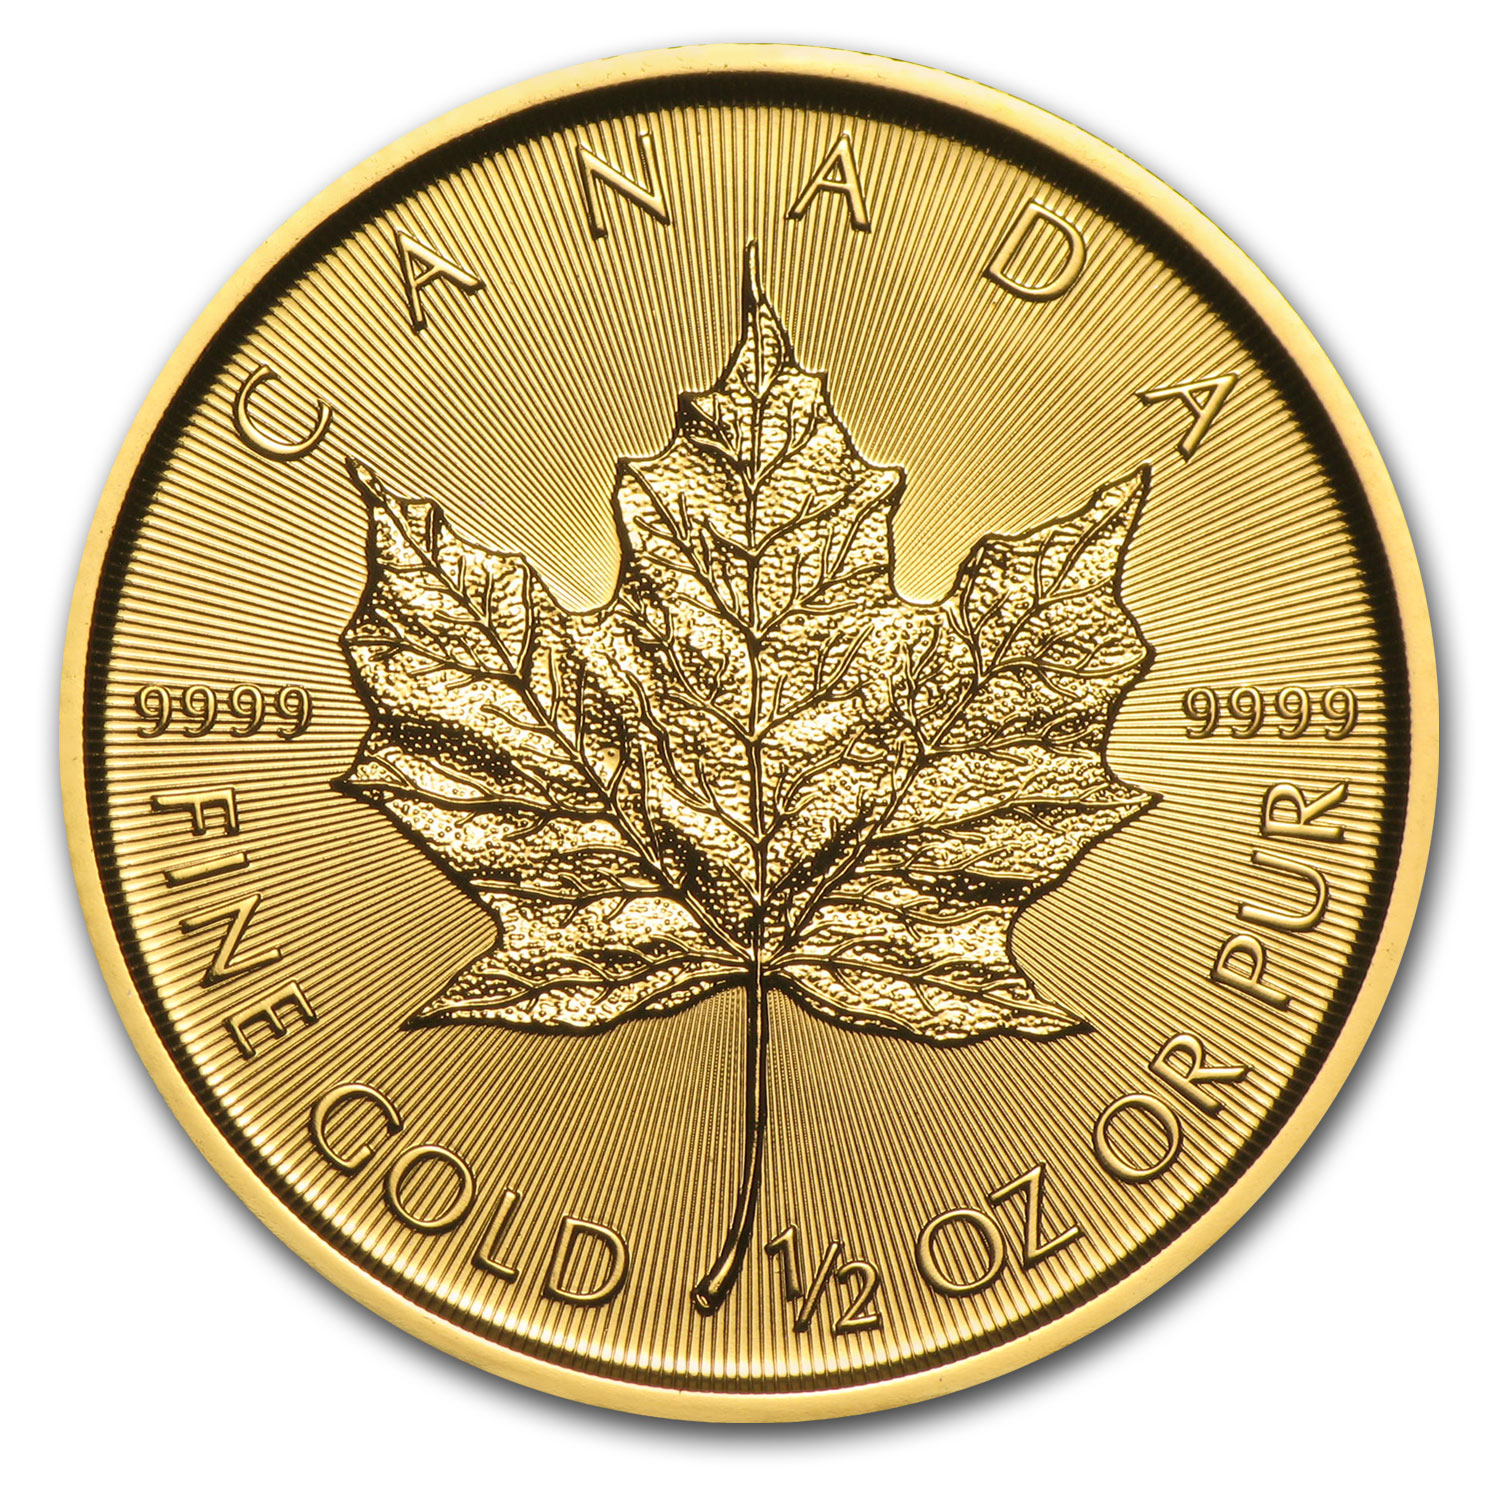 2017 Canada 1/2 oz Gold Maple Leaf BU